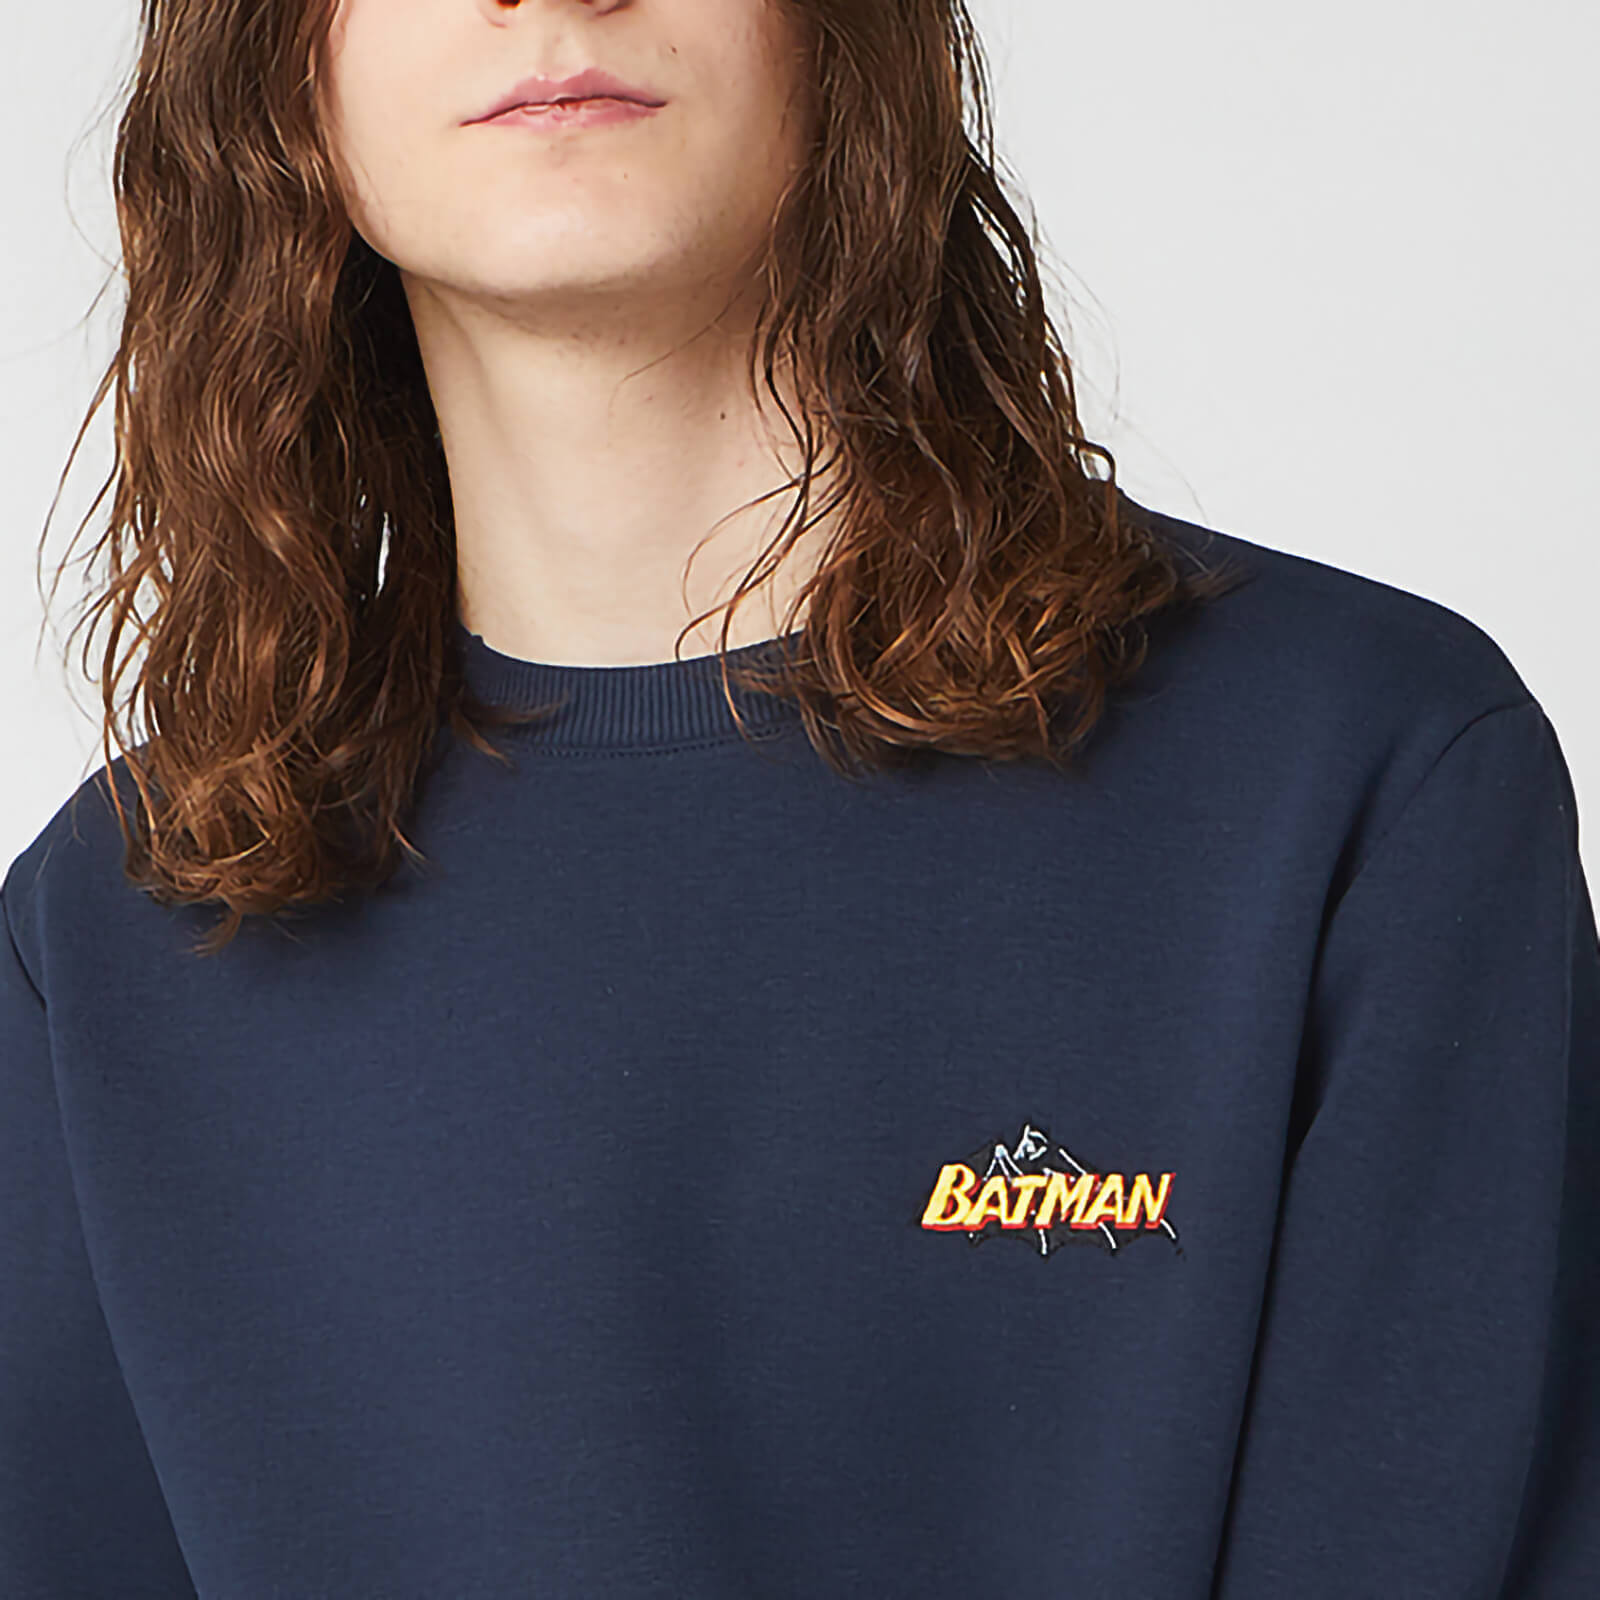 DC Batman Unisex Embroidered Sweatshirt - Navy - XXL - azul marino de DC Comics